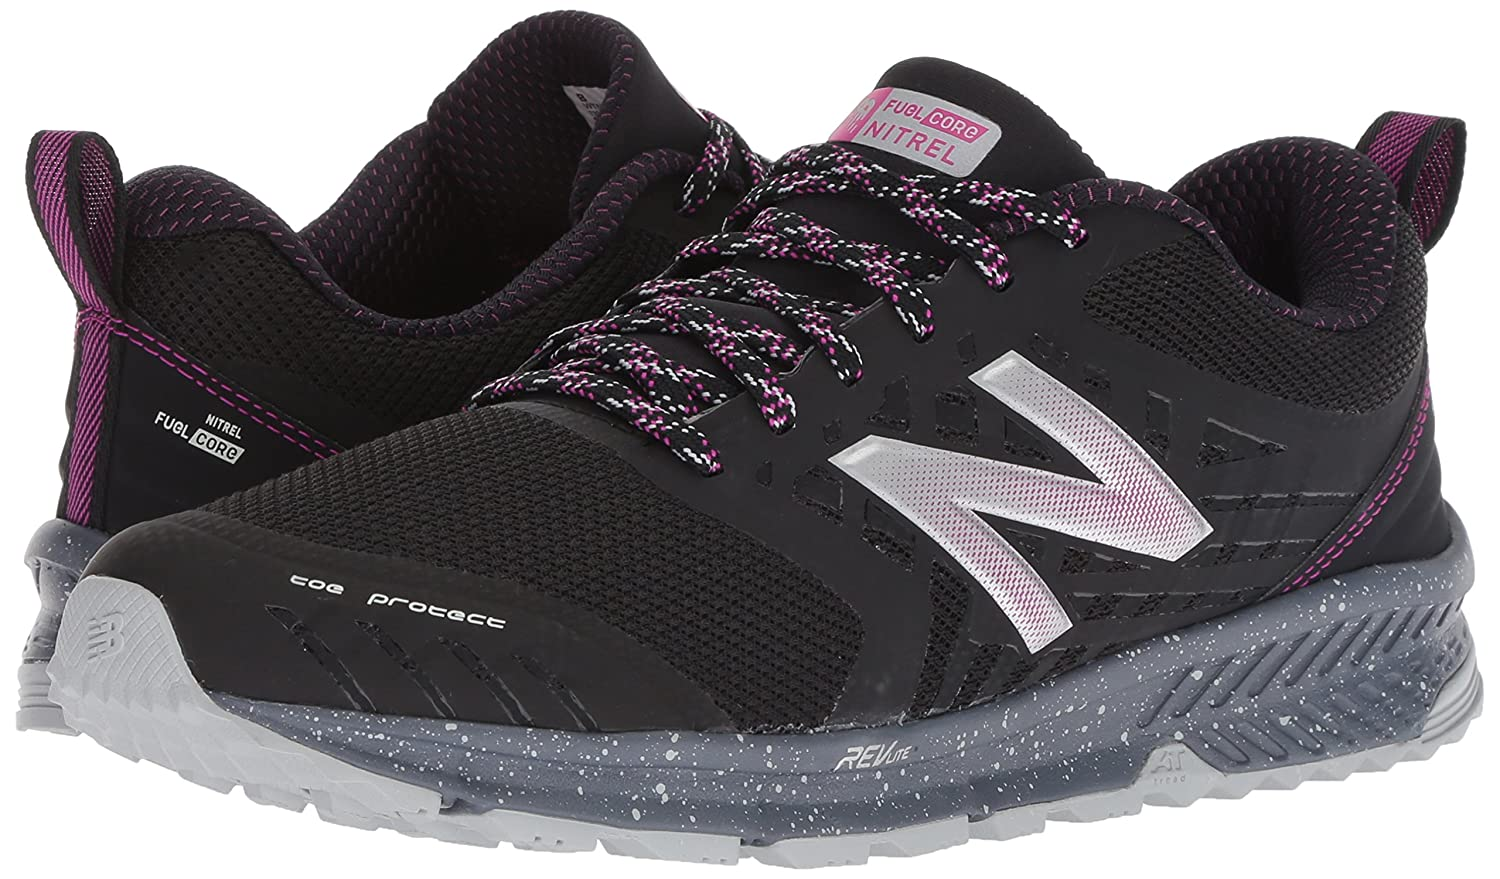 New Balance Trail Women's Nitrel v1 FuelCore Trail Balance Running Shoe B072QCXMFX 10.5 D US|Black/Poison Berry 183393